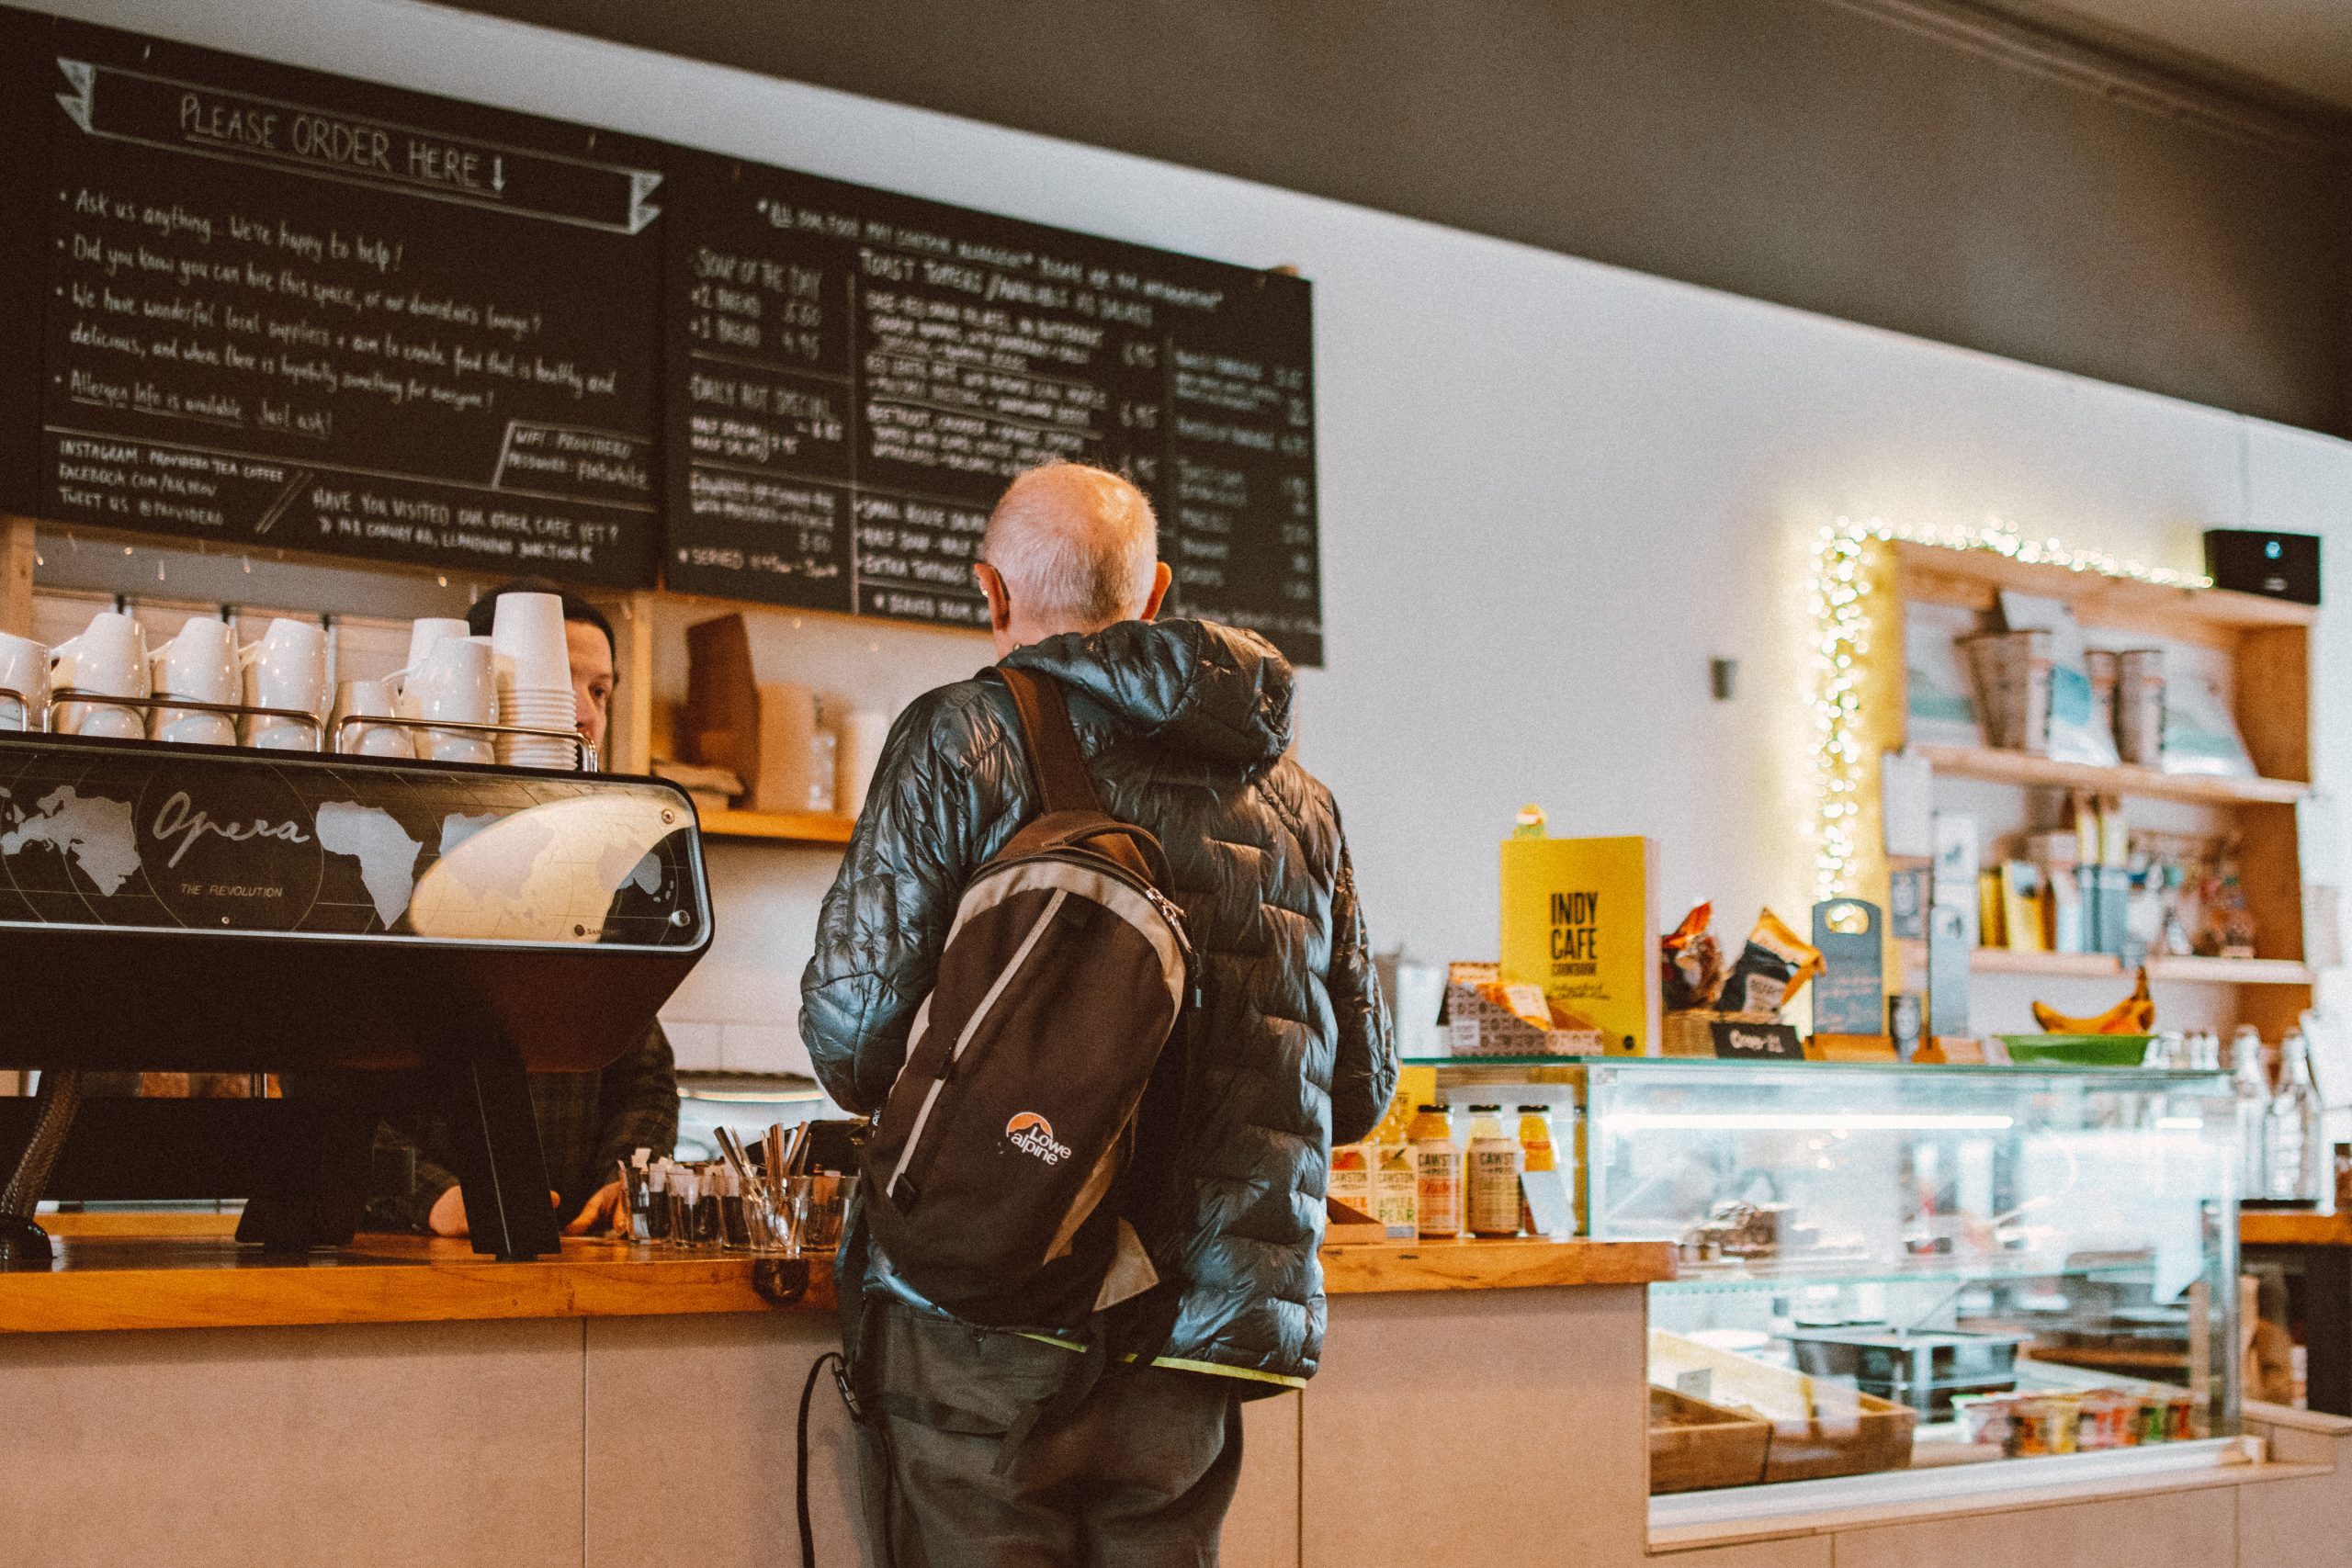 Man standing in front of counter